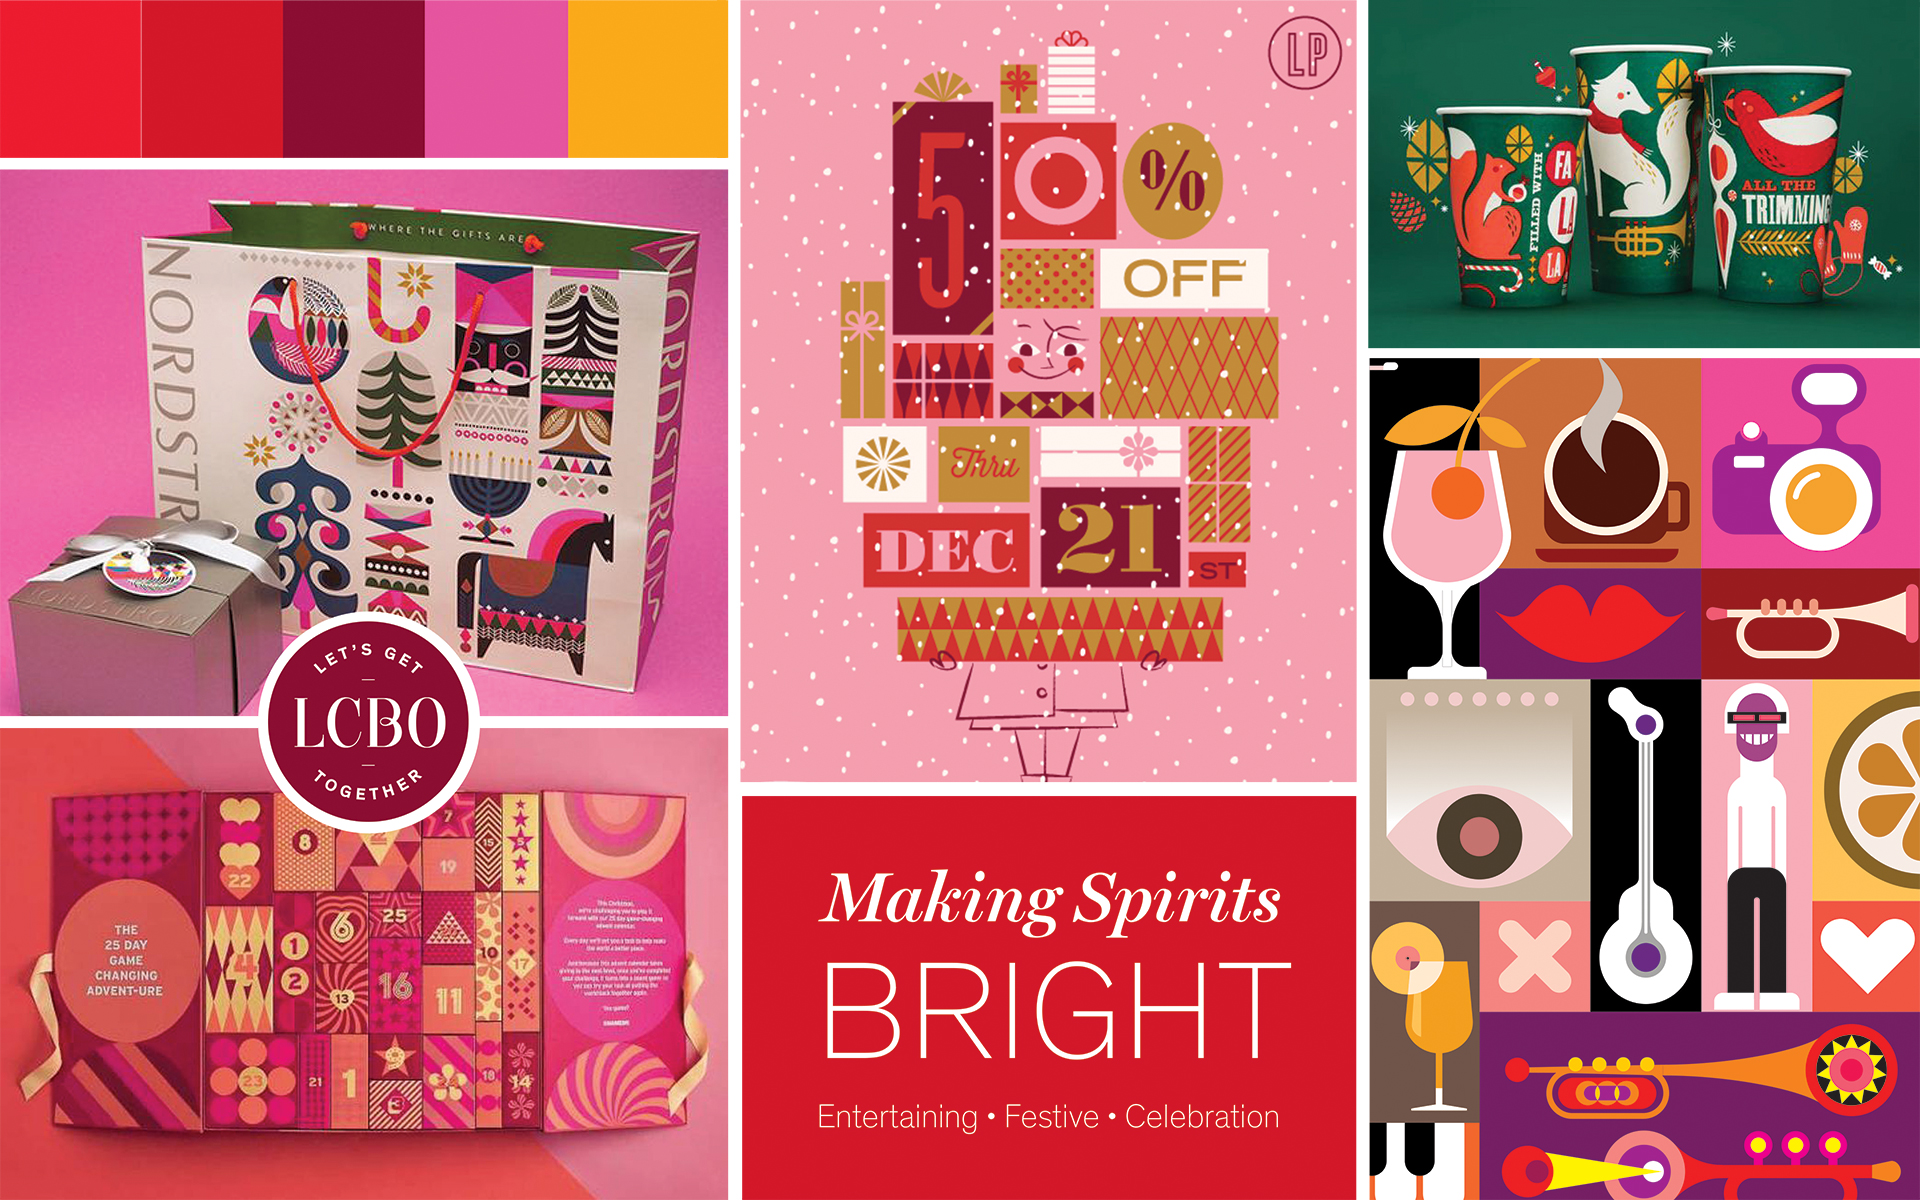 Paige Smith Designs for LCBO Holiday Packaging